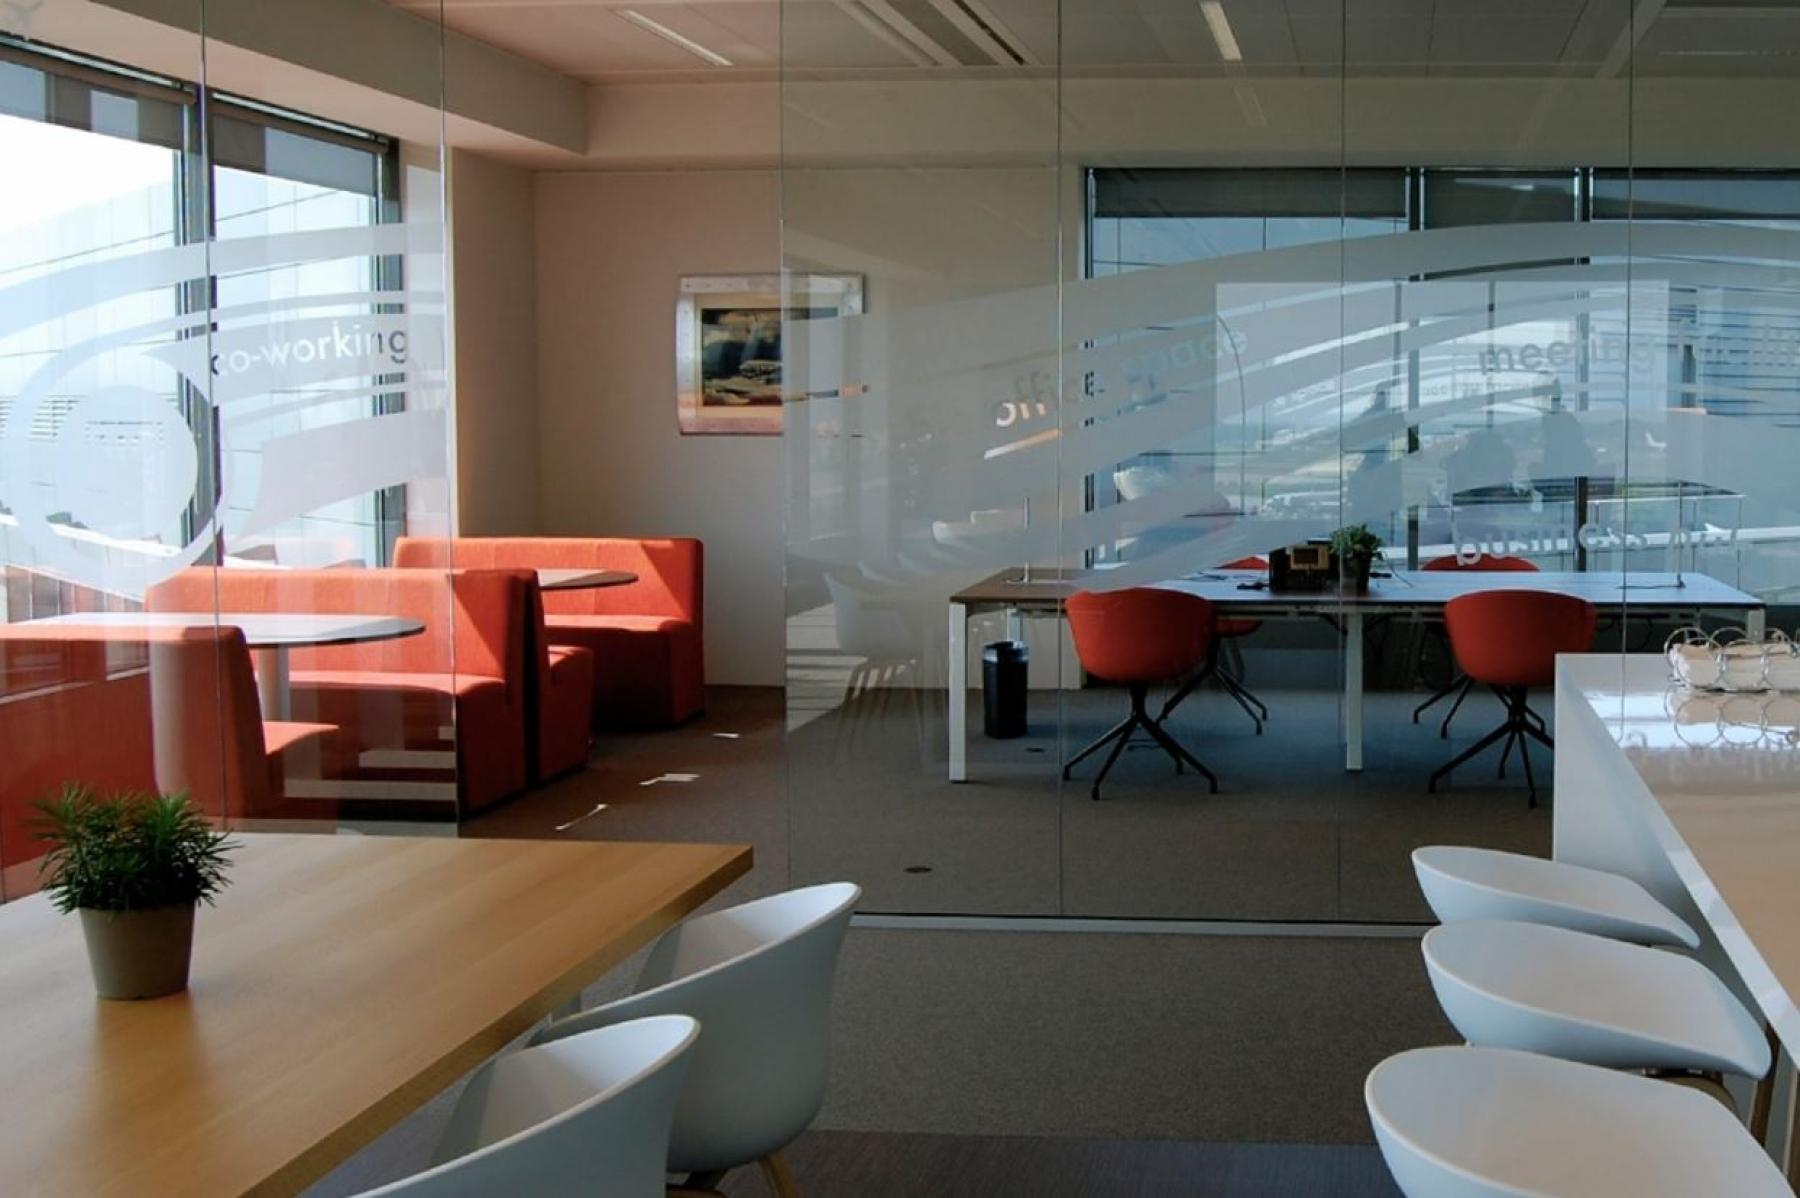 the present co-working space in the office